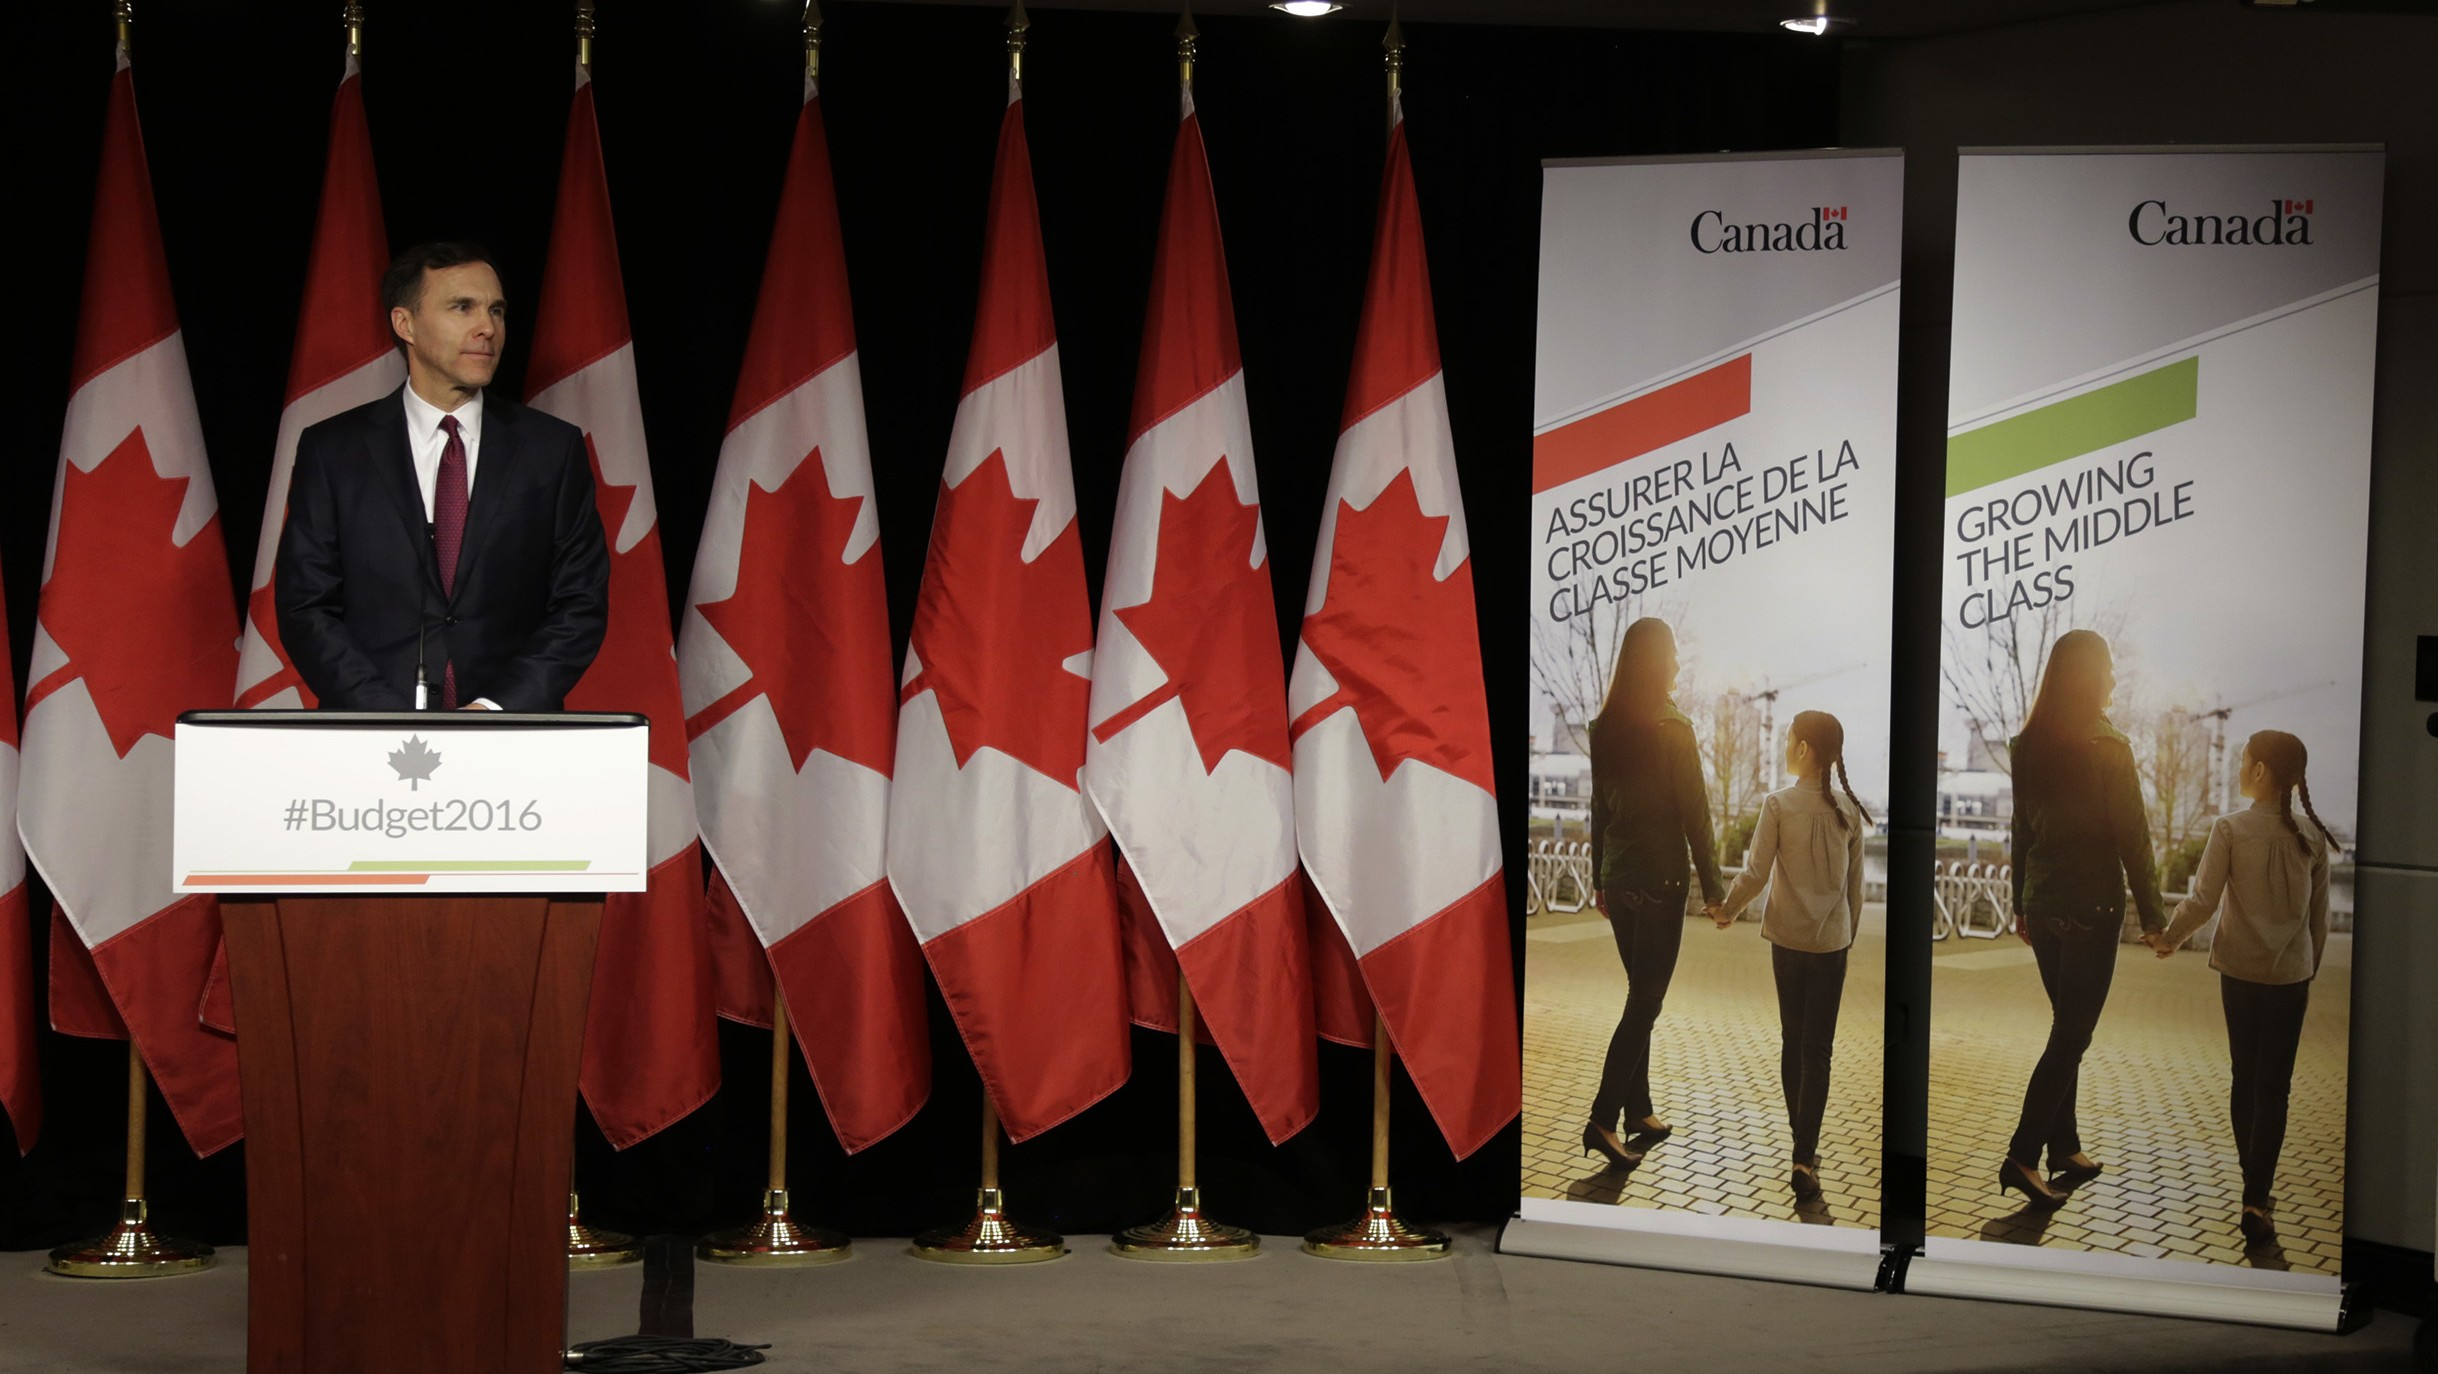 Canada Announces a $30 Billion Deficit and 10,000 More Syrian Refugees